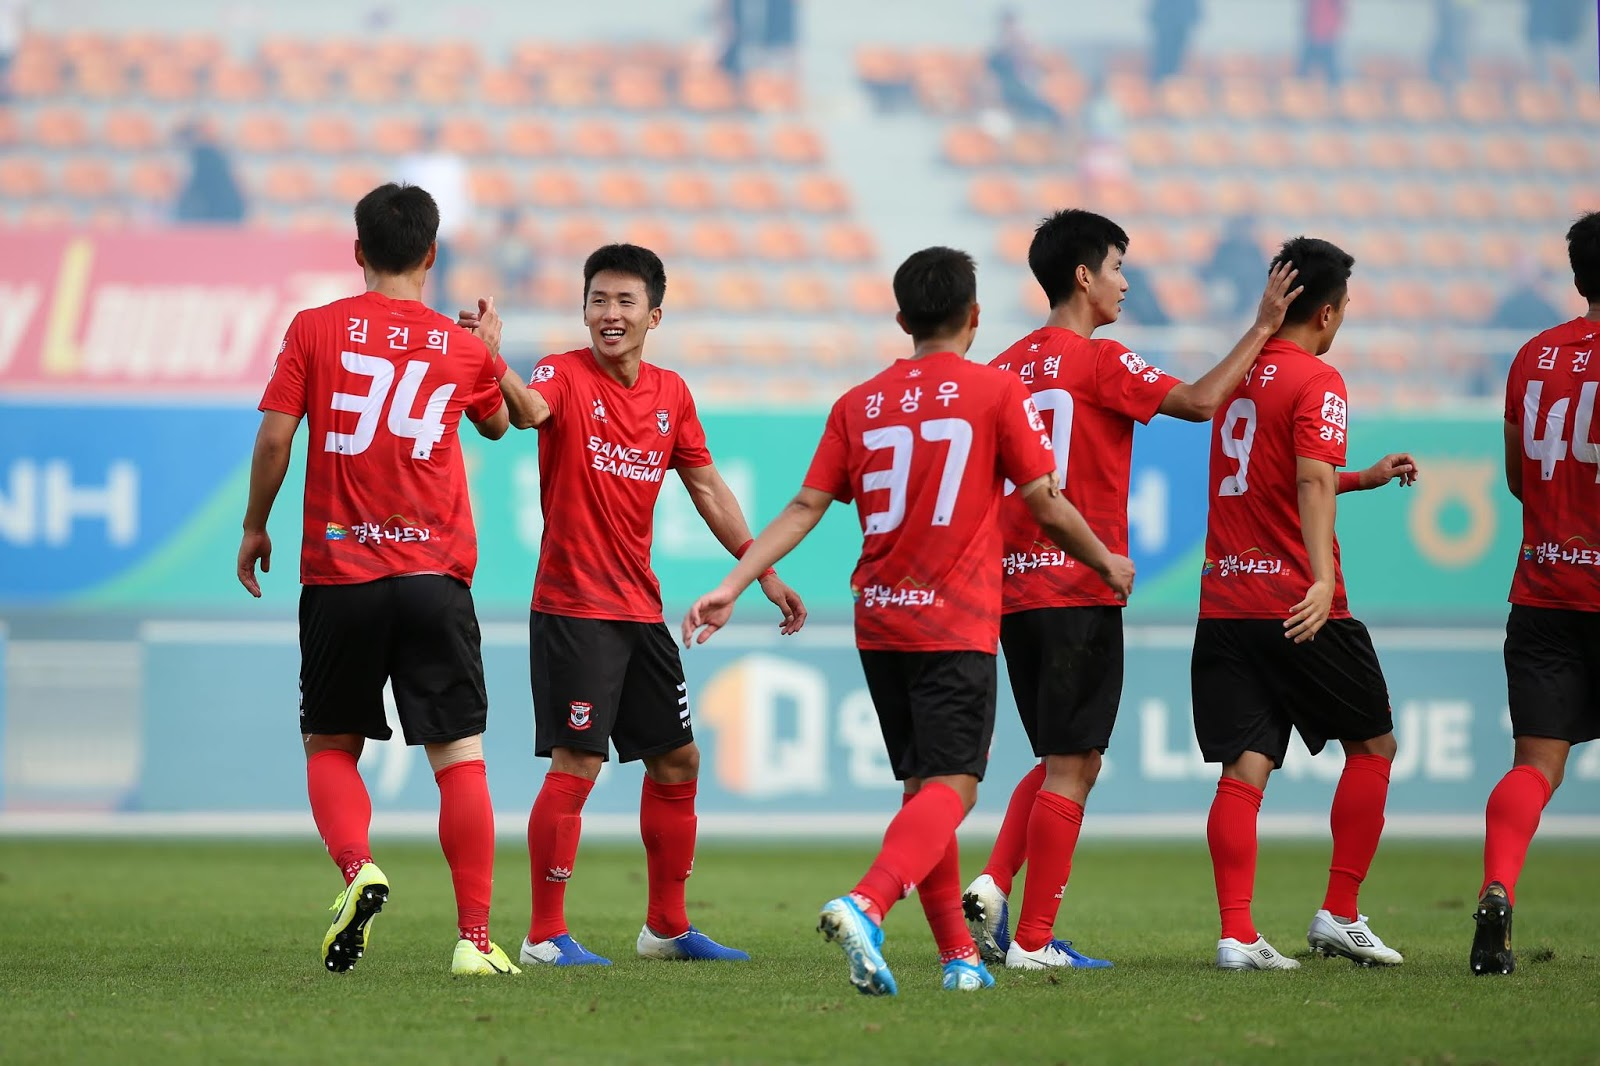 Sangju's 2-1 win against Gangwon was not enough for a top six finish.